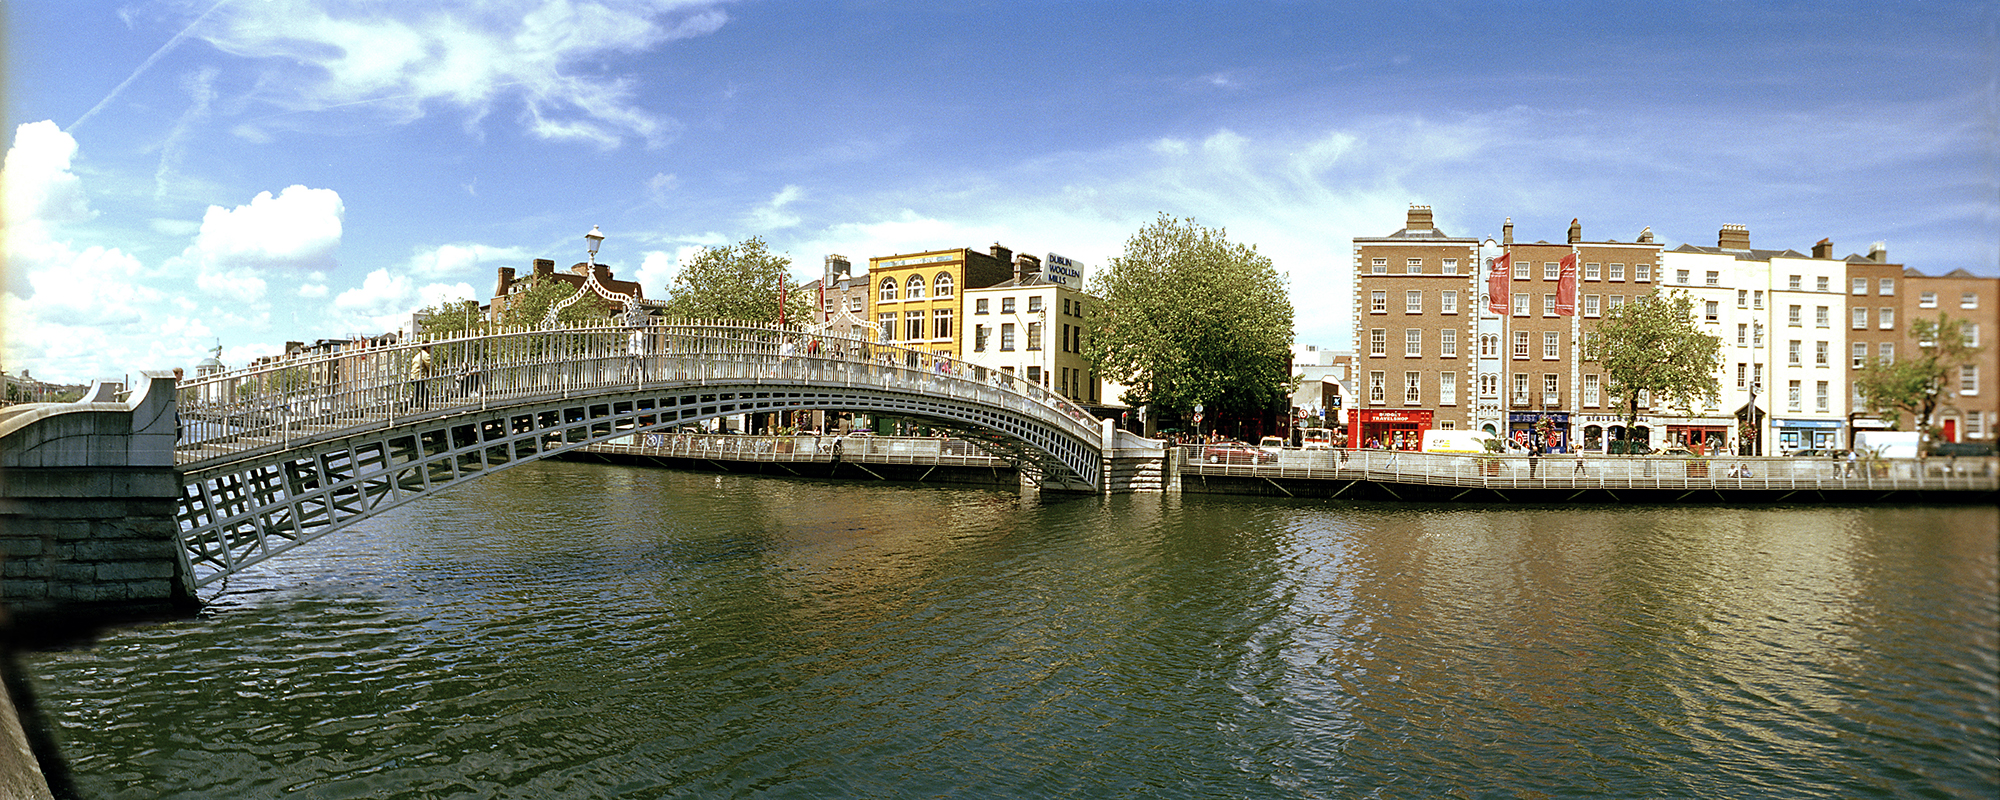 A landscape view of the Ha'penny Bridge